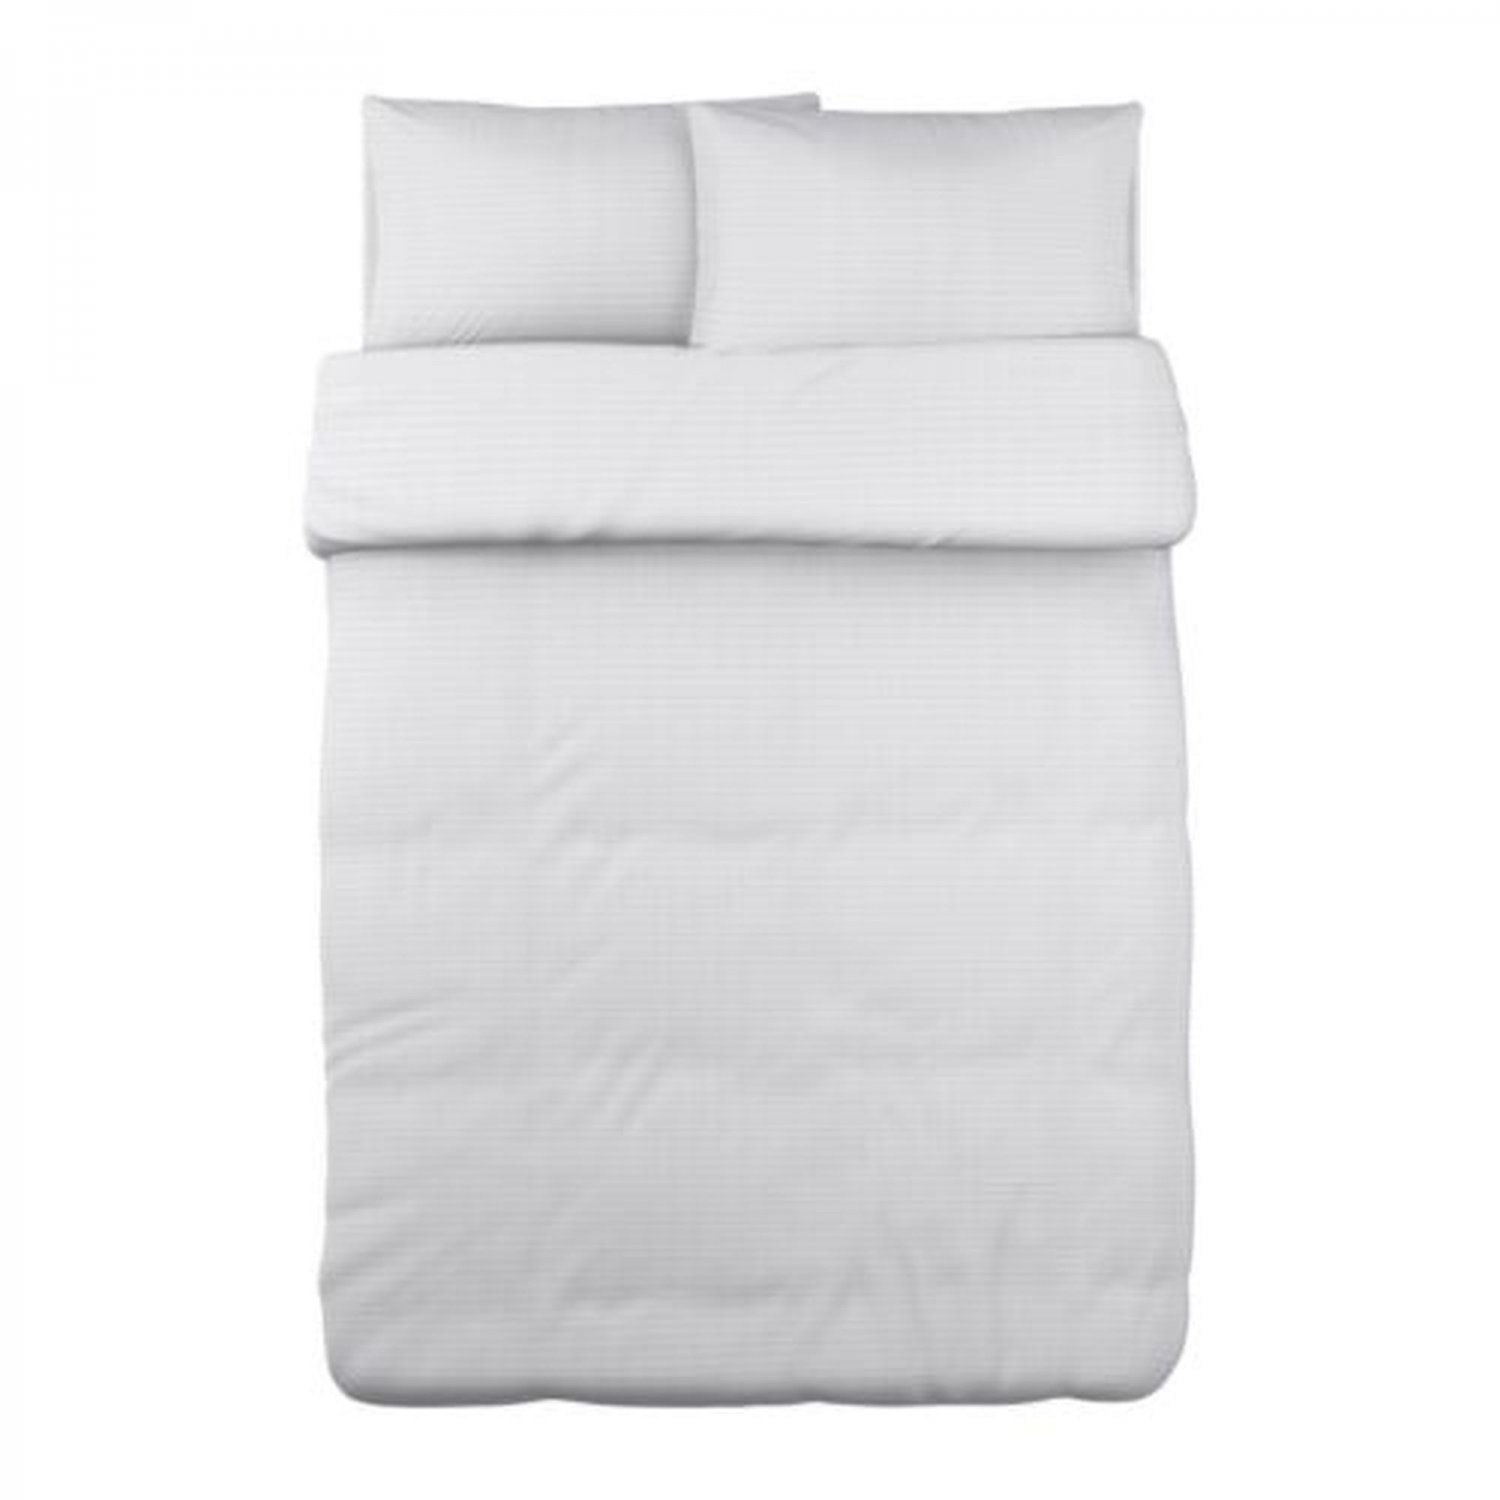 IKEA Ofelia Vass WHITE Pleated QUEEN Full Double DUVET COVER and Pillowcases Set